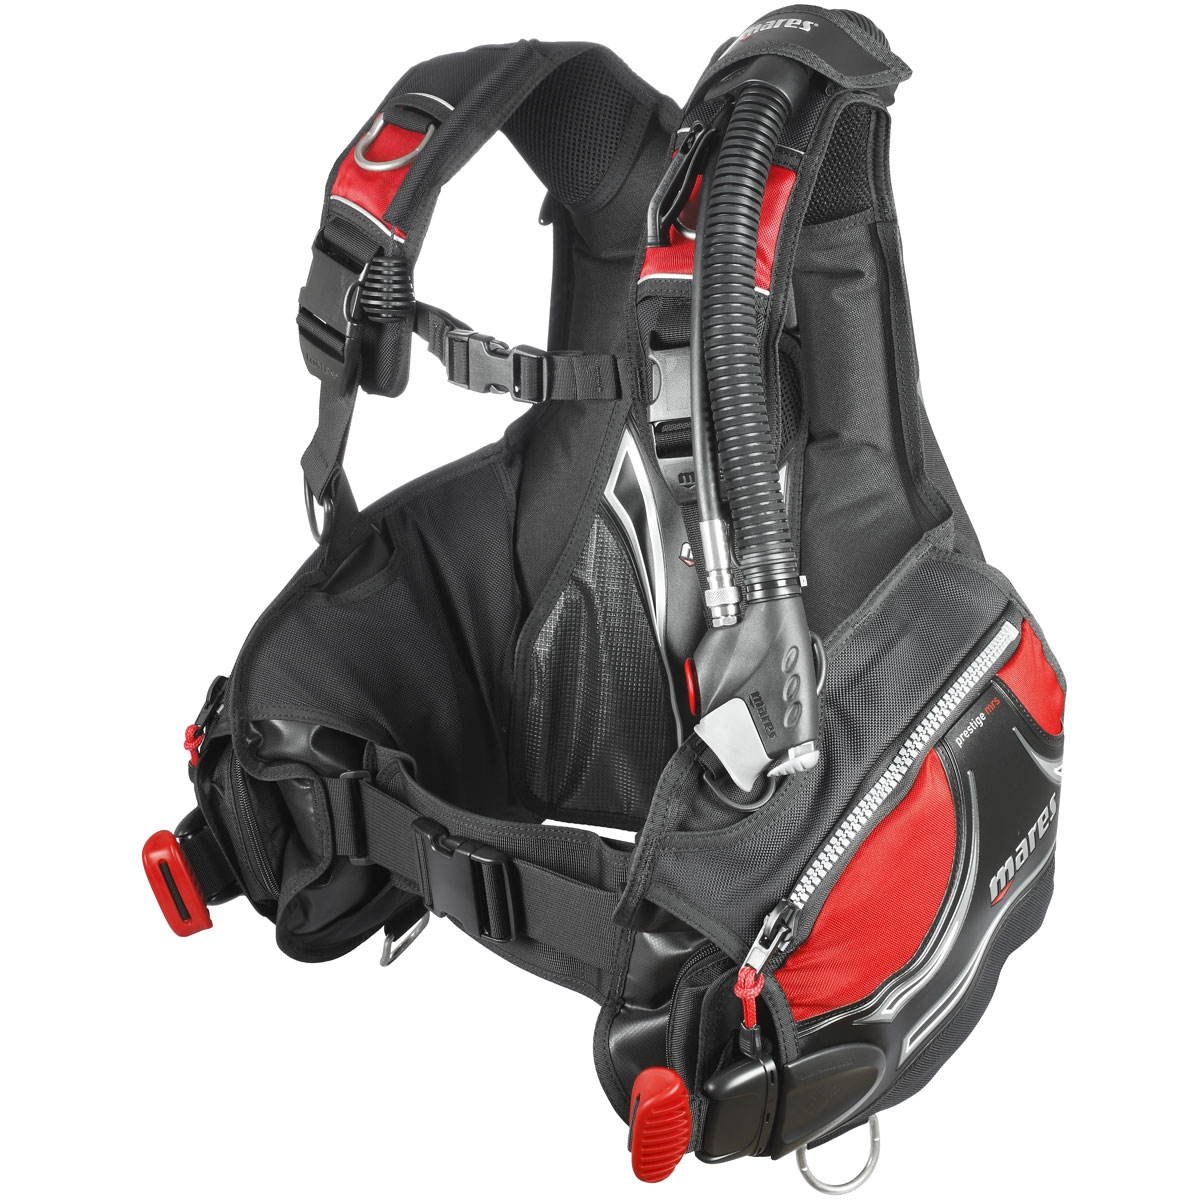 NEW MARES BCD MRS PLUS WEIGHT POCKET 4KGS GREAT CONDITION COMES AS PHOTOS SHOW